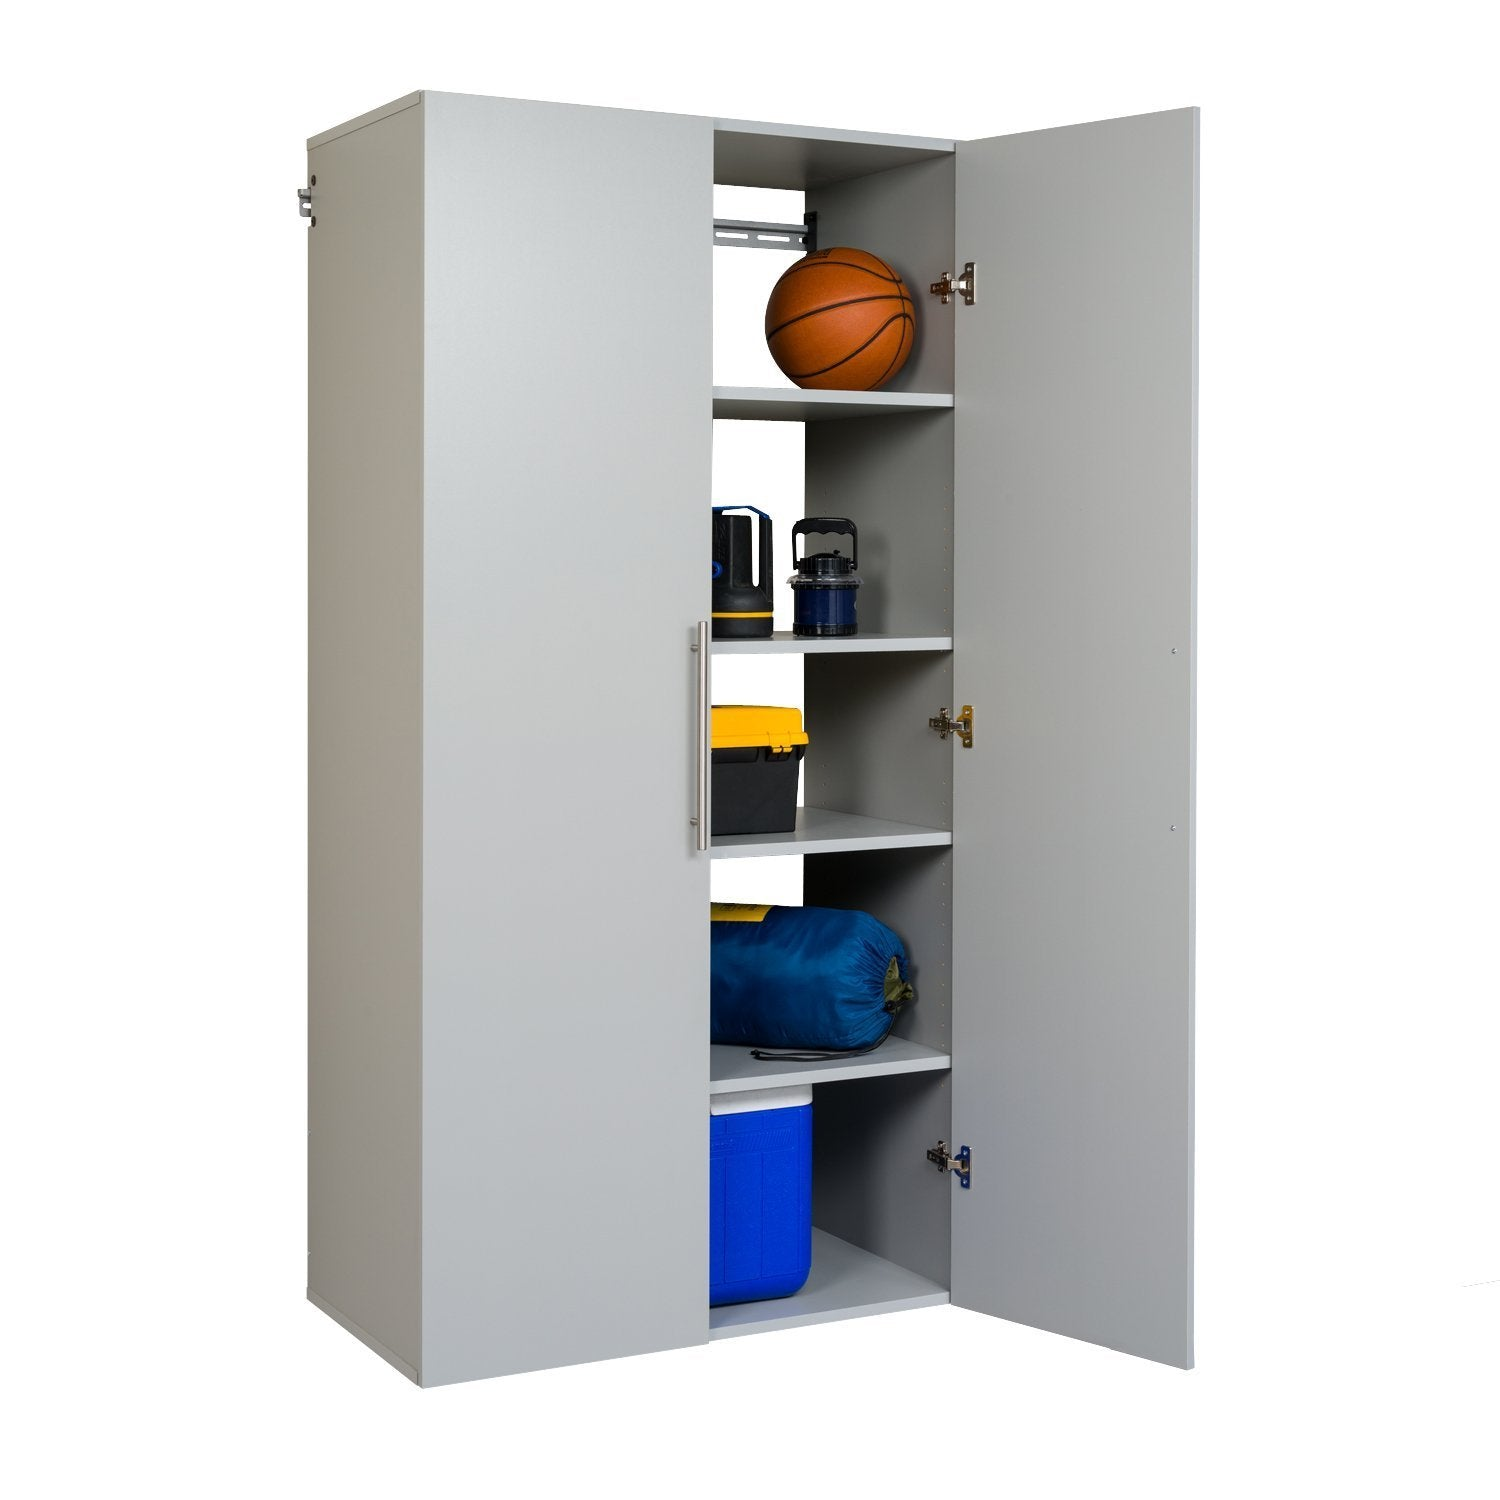 Best prepac gscw 0708 2k hang ups storage cabinet 36 large light gray